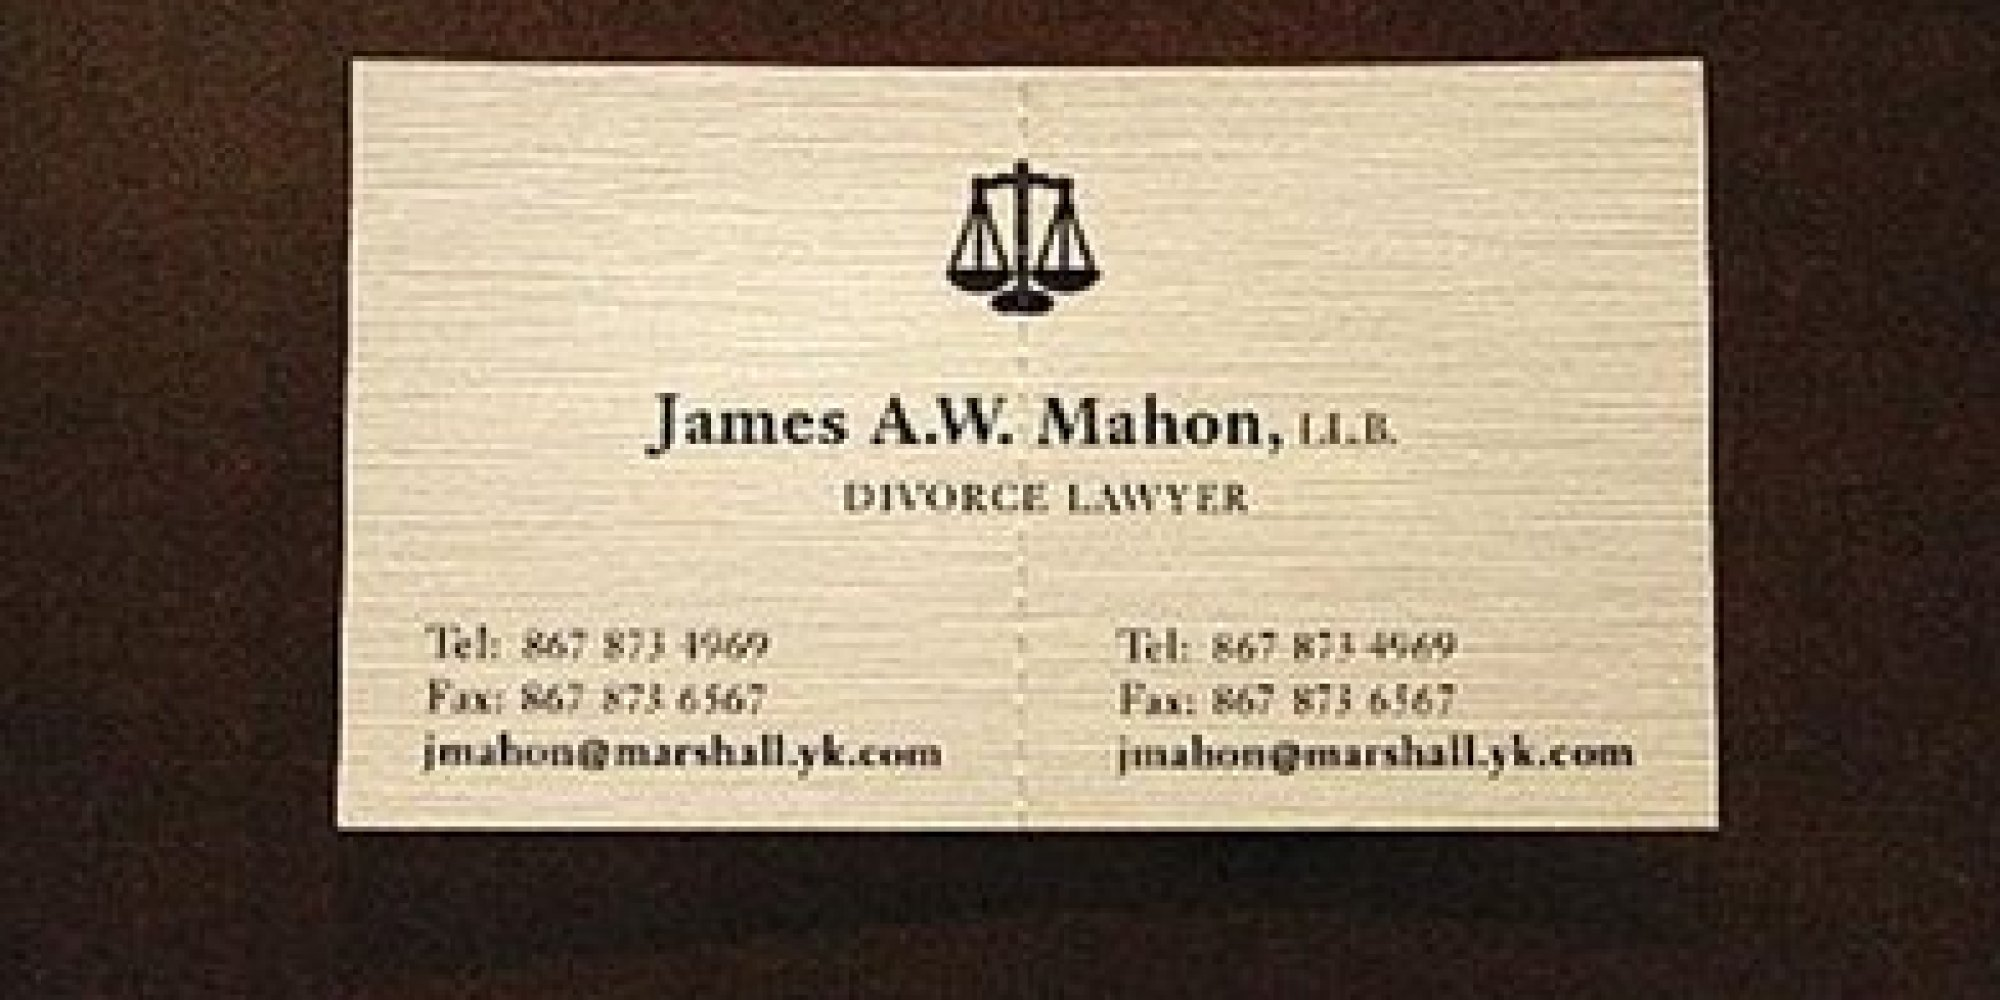 Divorce Attorney\'s Business Card Is Not What It Seems (PHOTO) | HuffPost